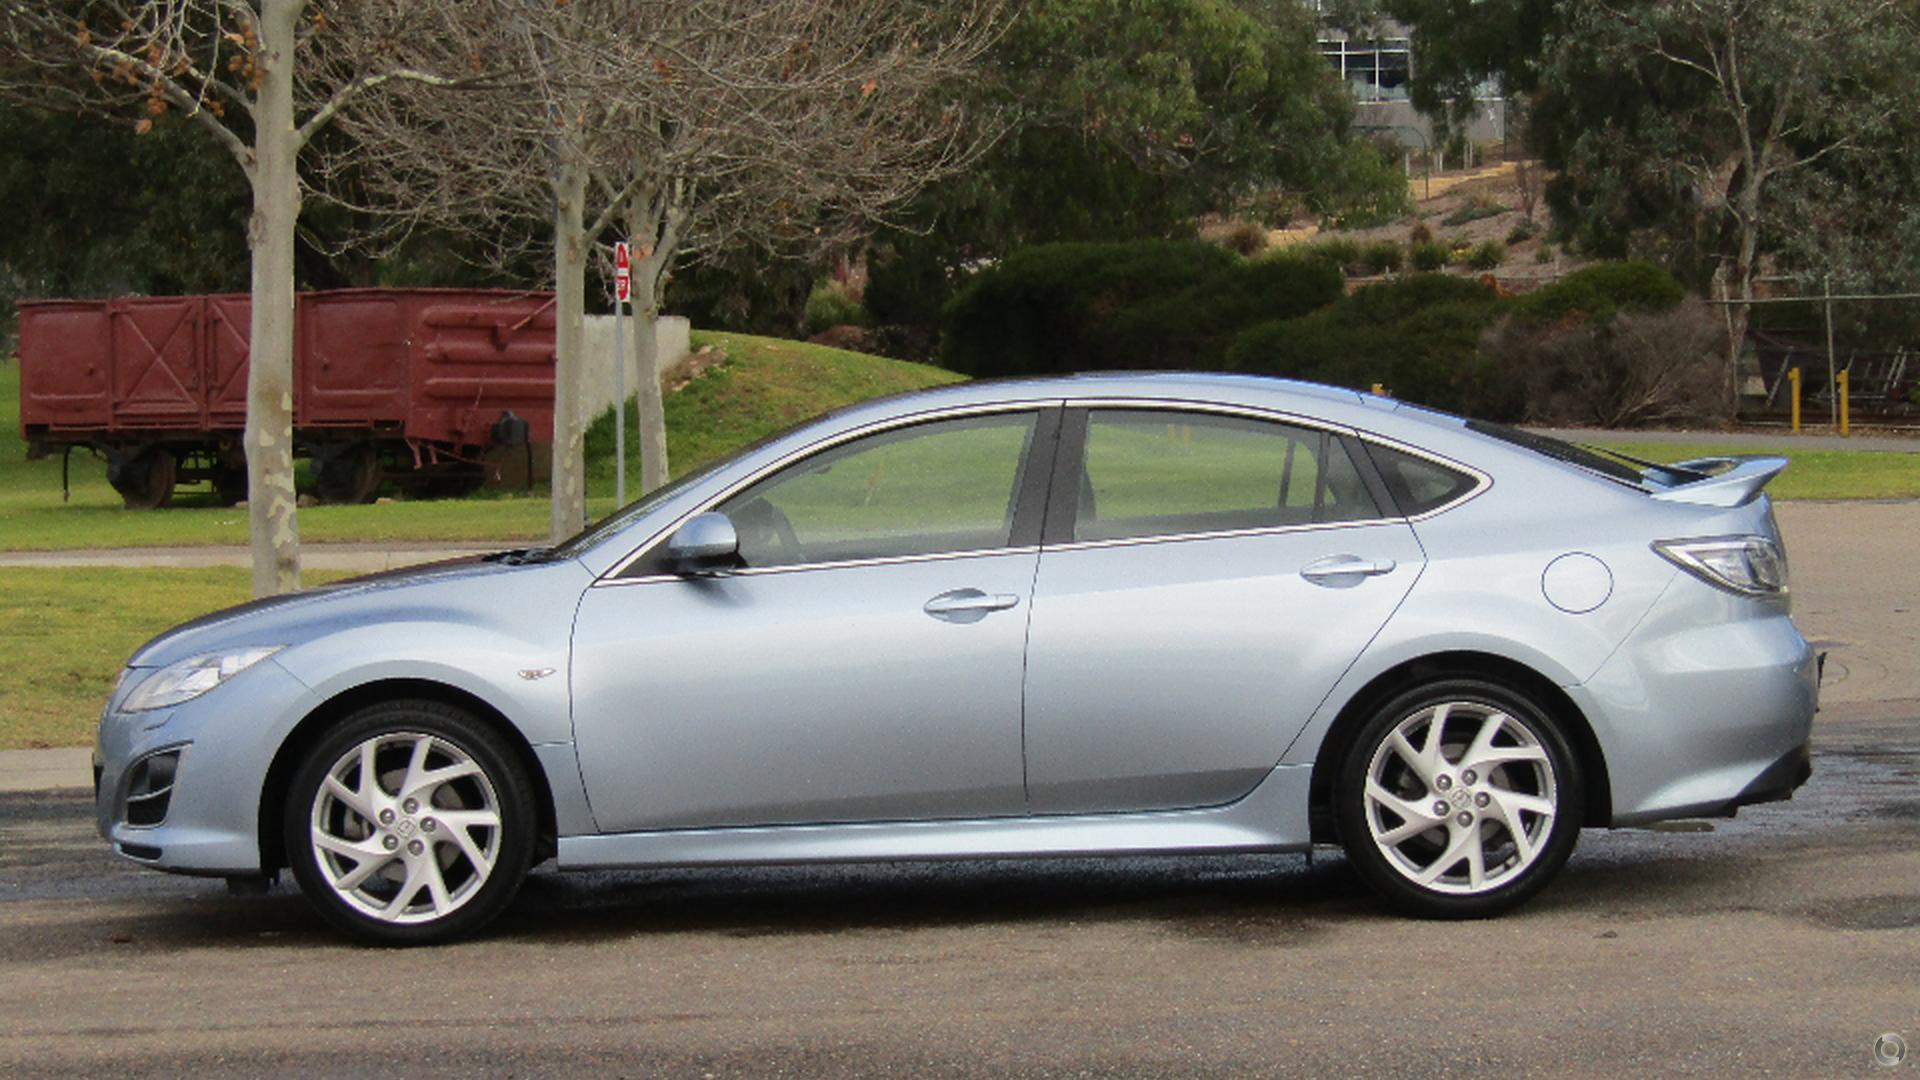 2010 Mazda 6 Luxury GH Series 1